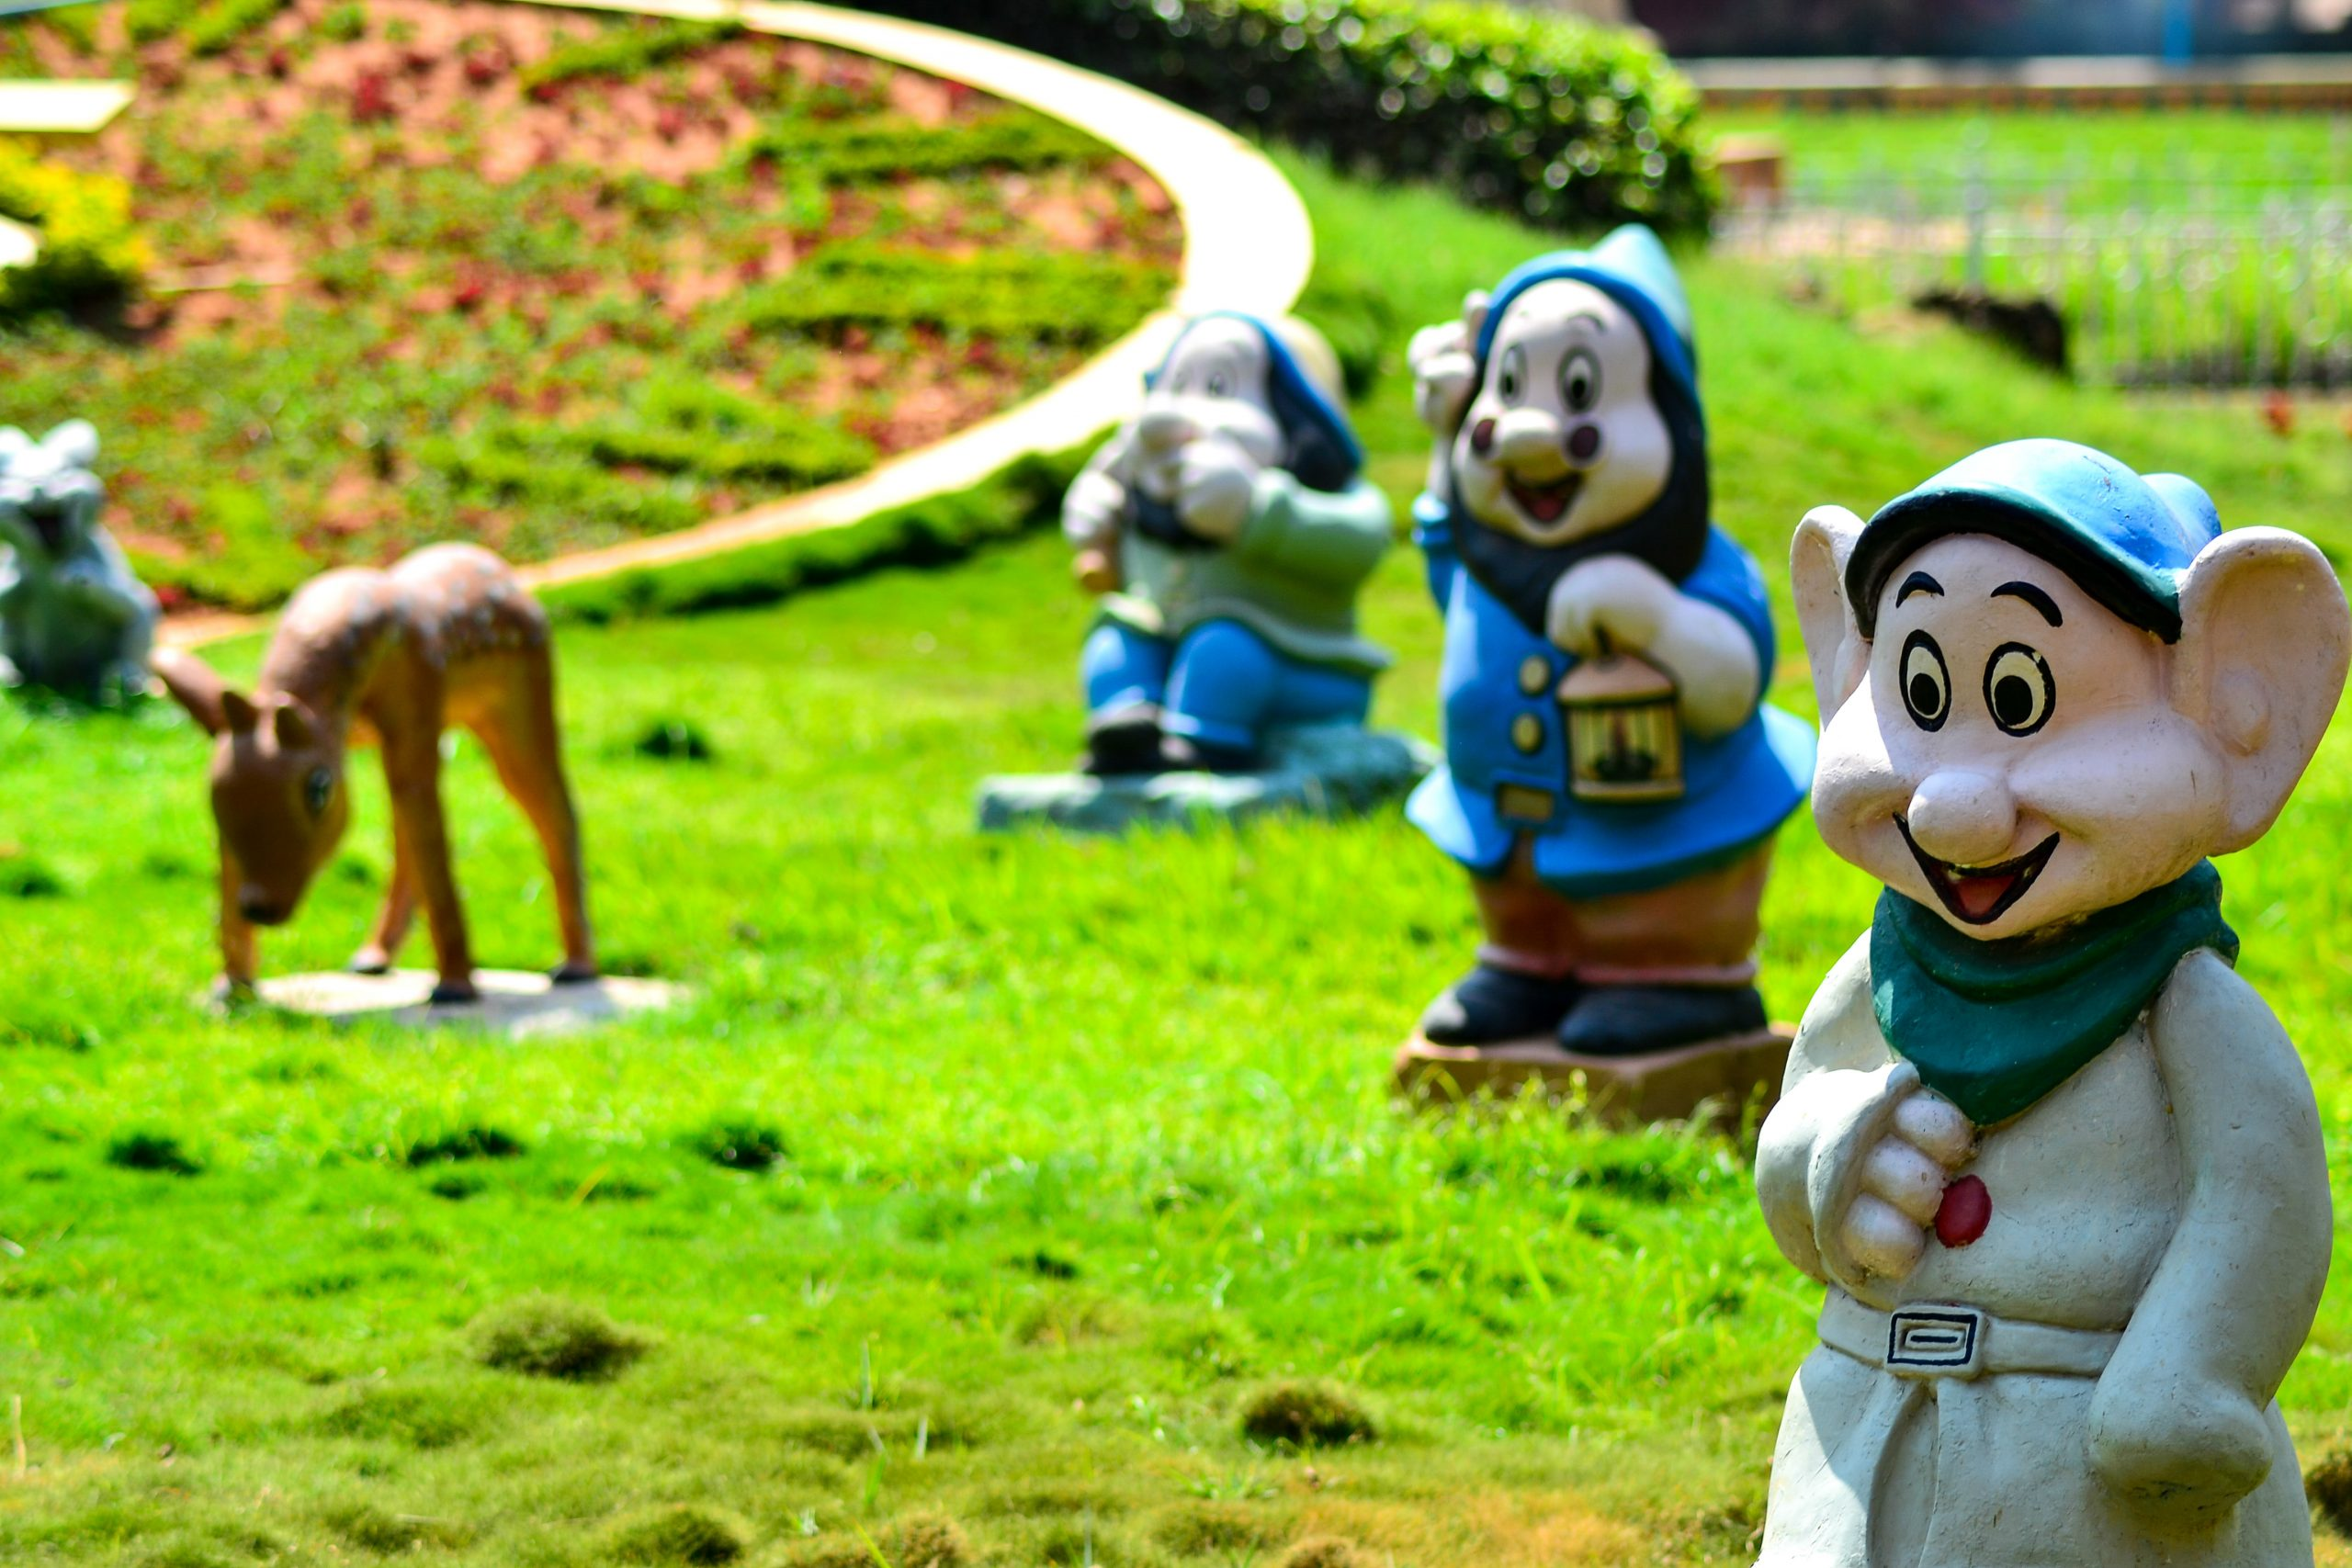 statues at park